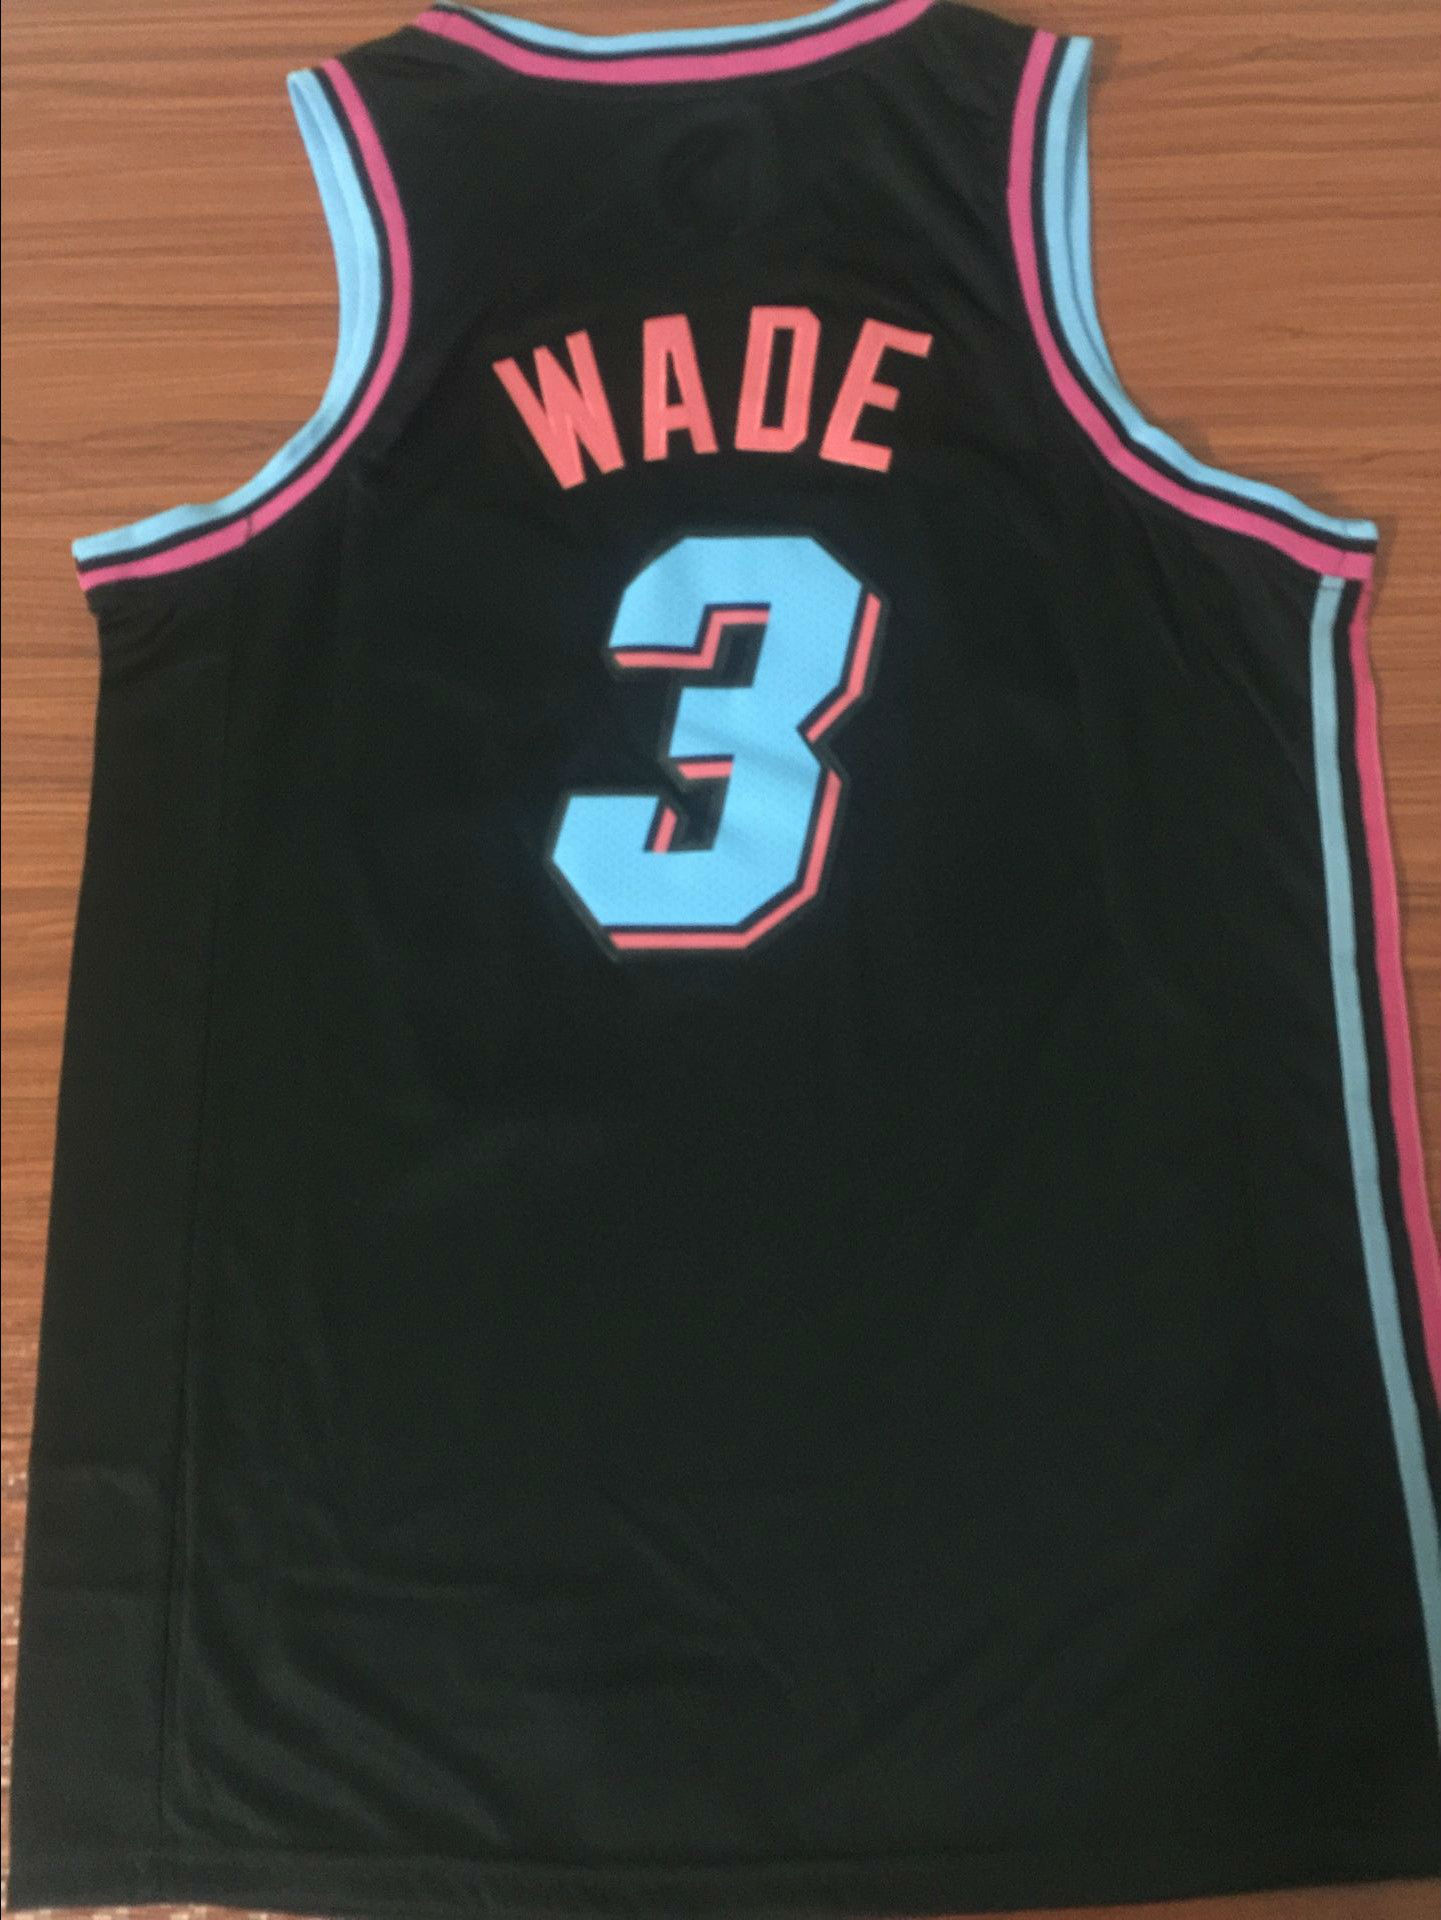 08b92c8e7d5 Men s Miami Heat City Edition 3  Dwyane Wade Black Basketball Jersey -  Thumbnail 1